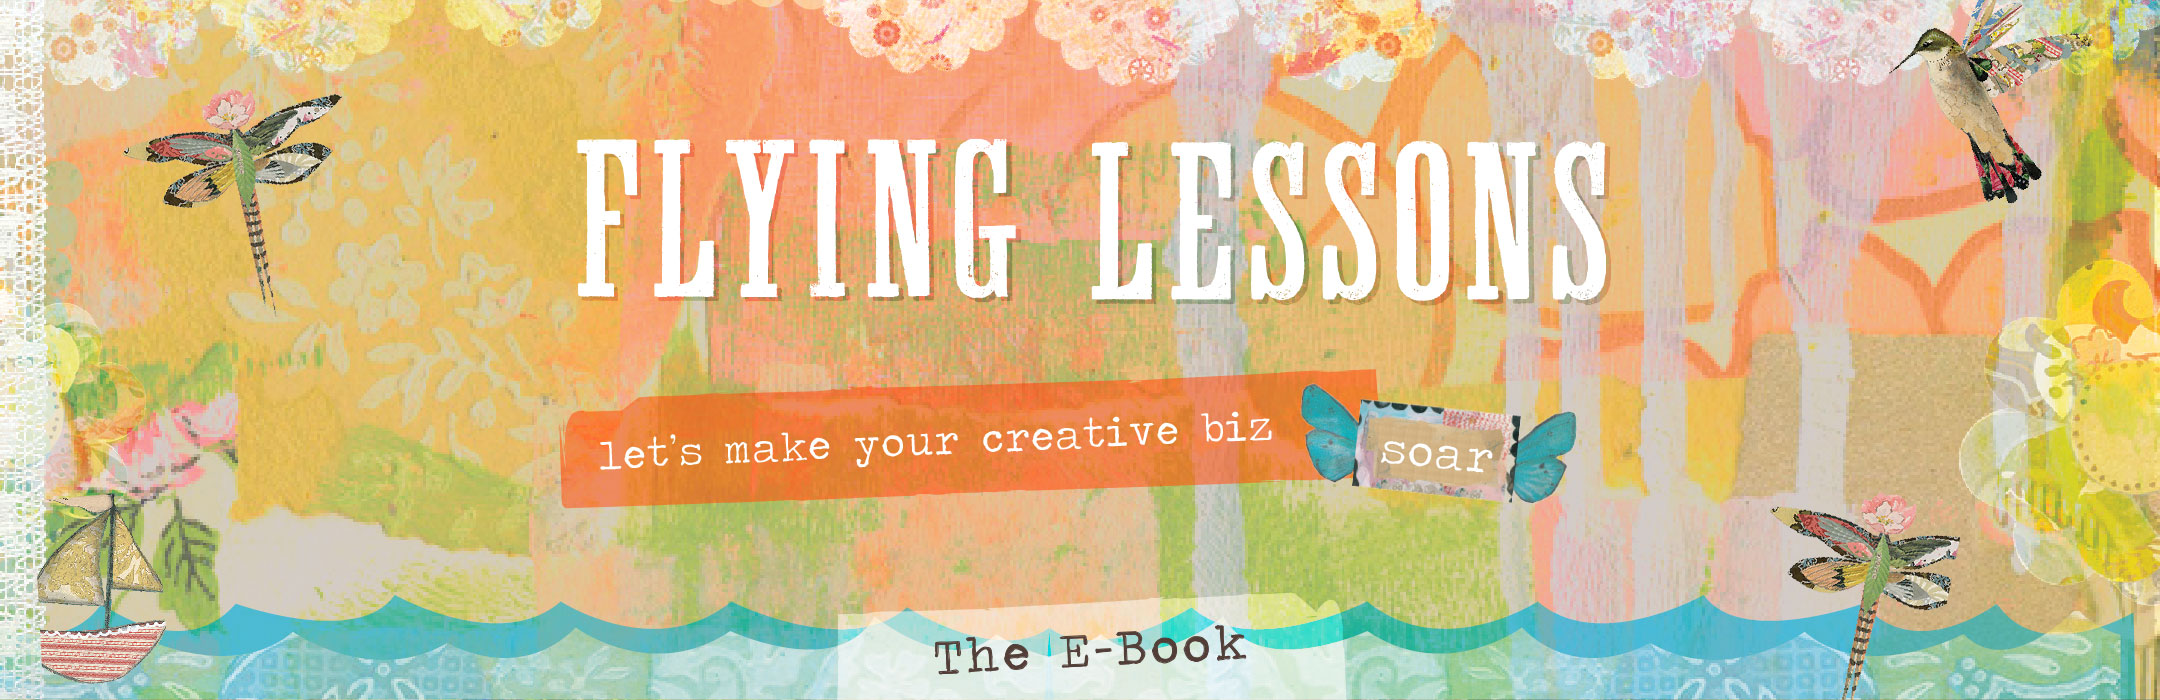 Flying Lessons let's make your creative biz soar